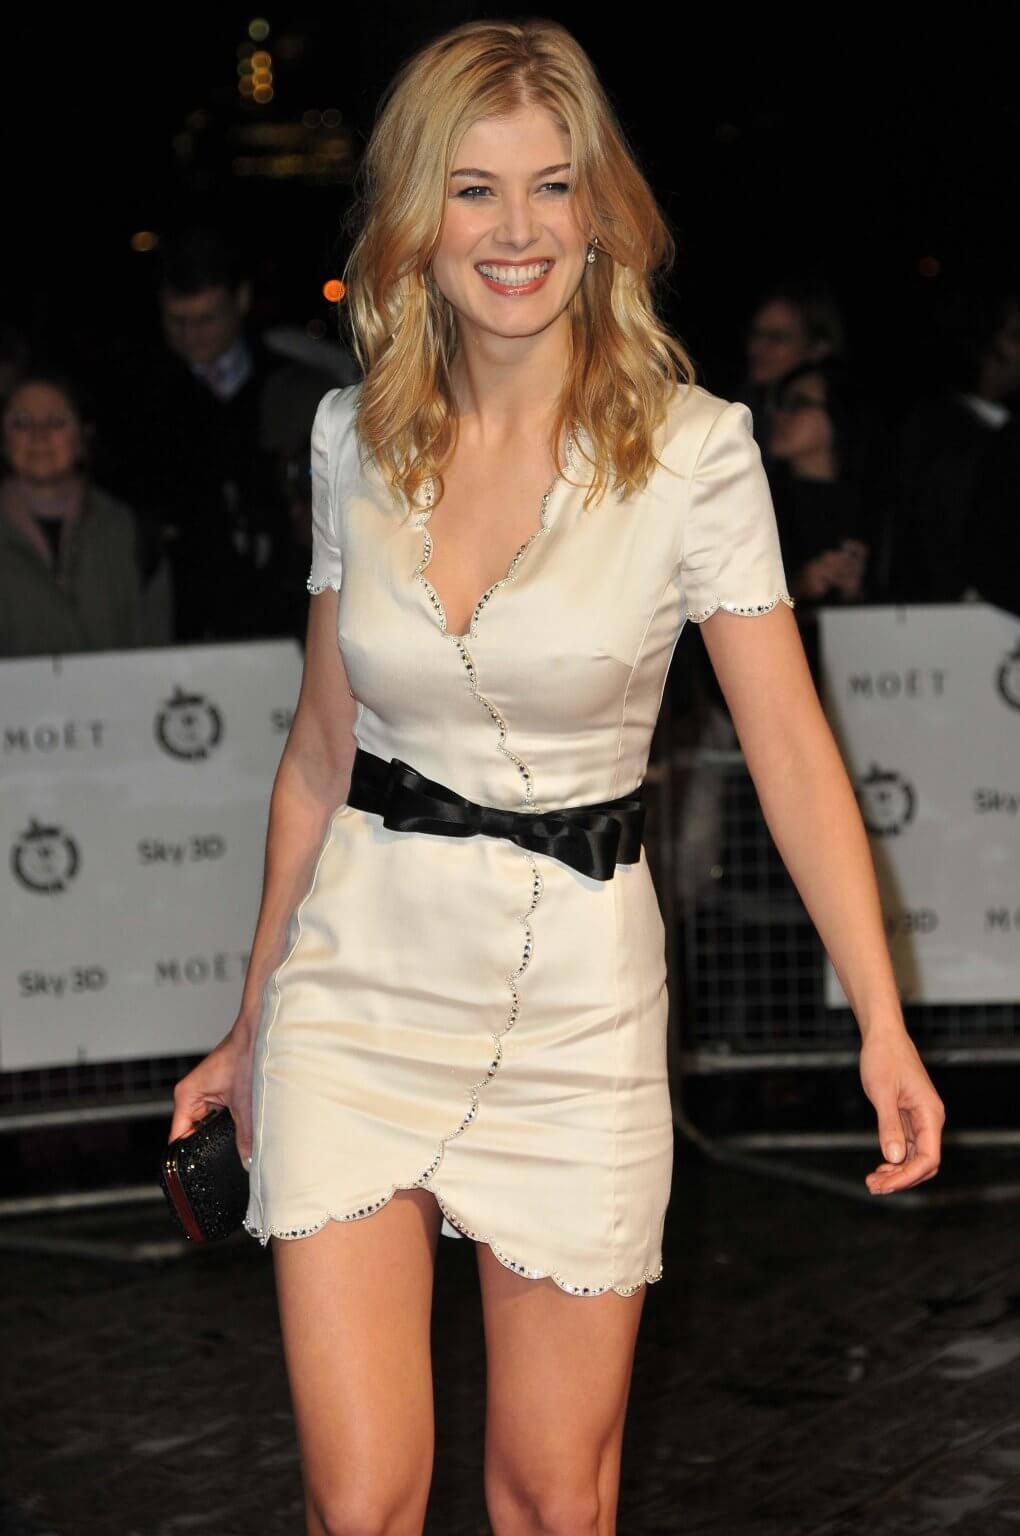 49 sexy photos of Rosamund Pike Boobs make you want to